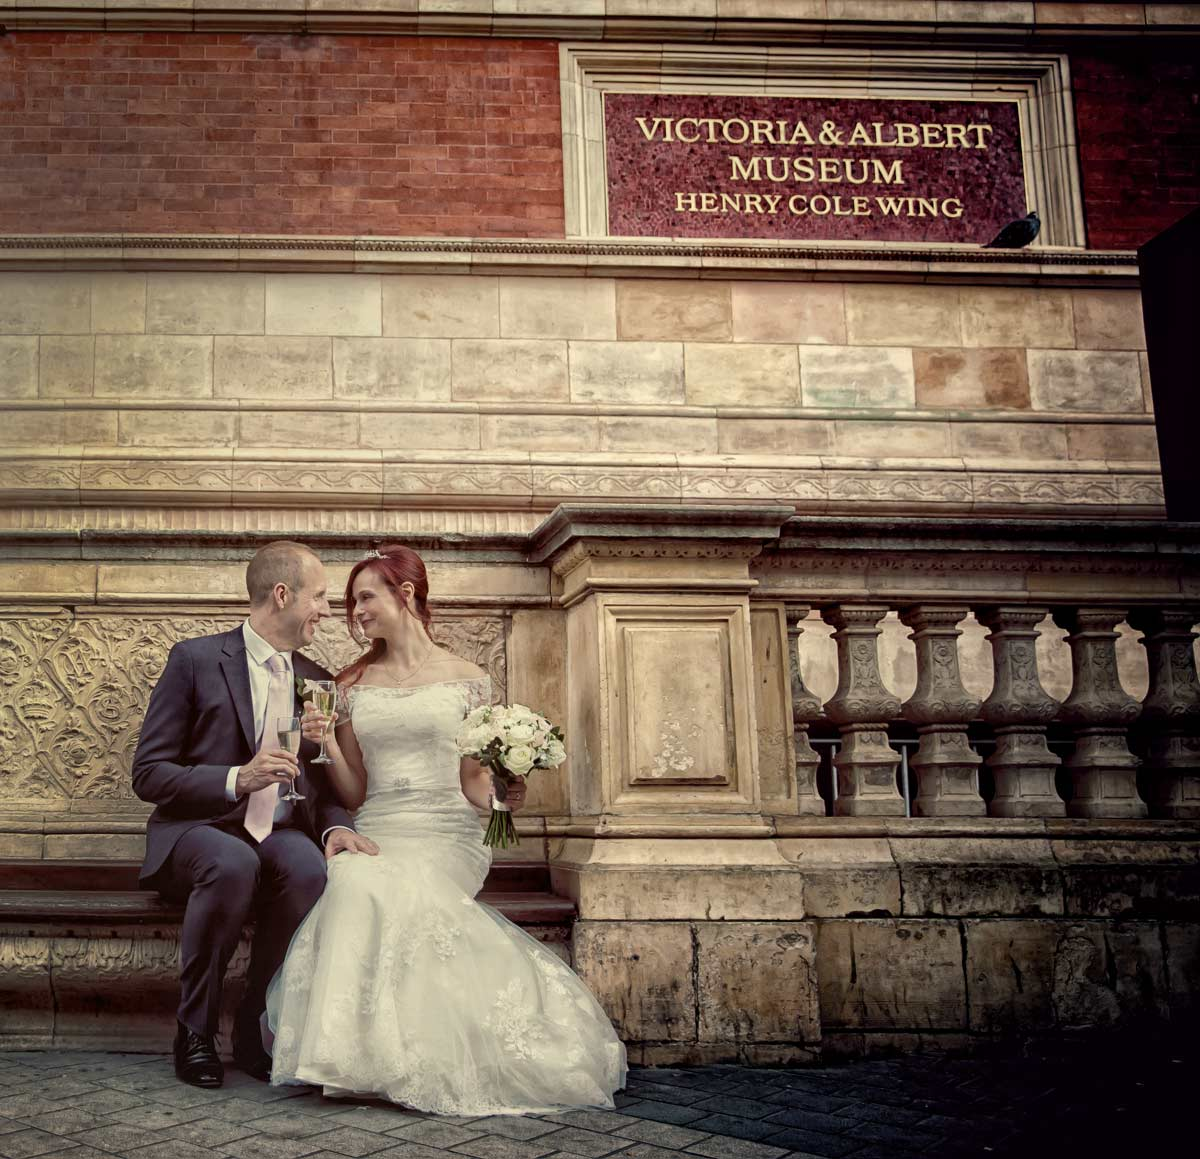 Wedding couple toast on bench outside Victoria and Albert Museum